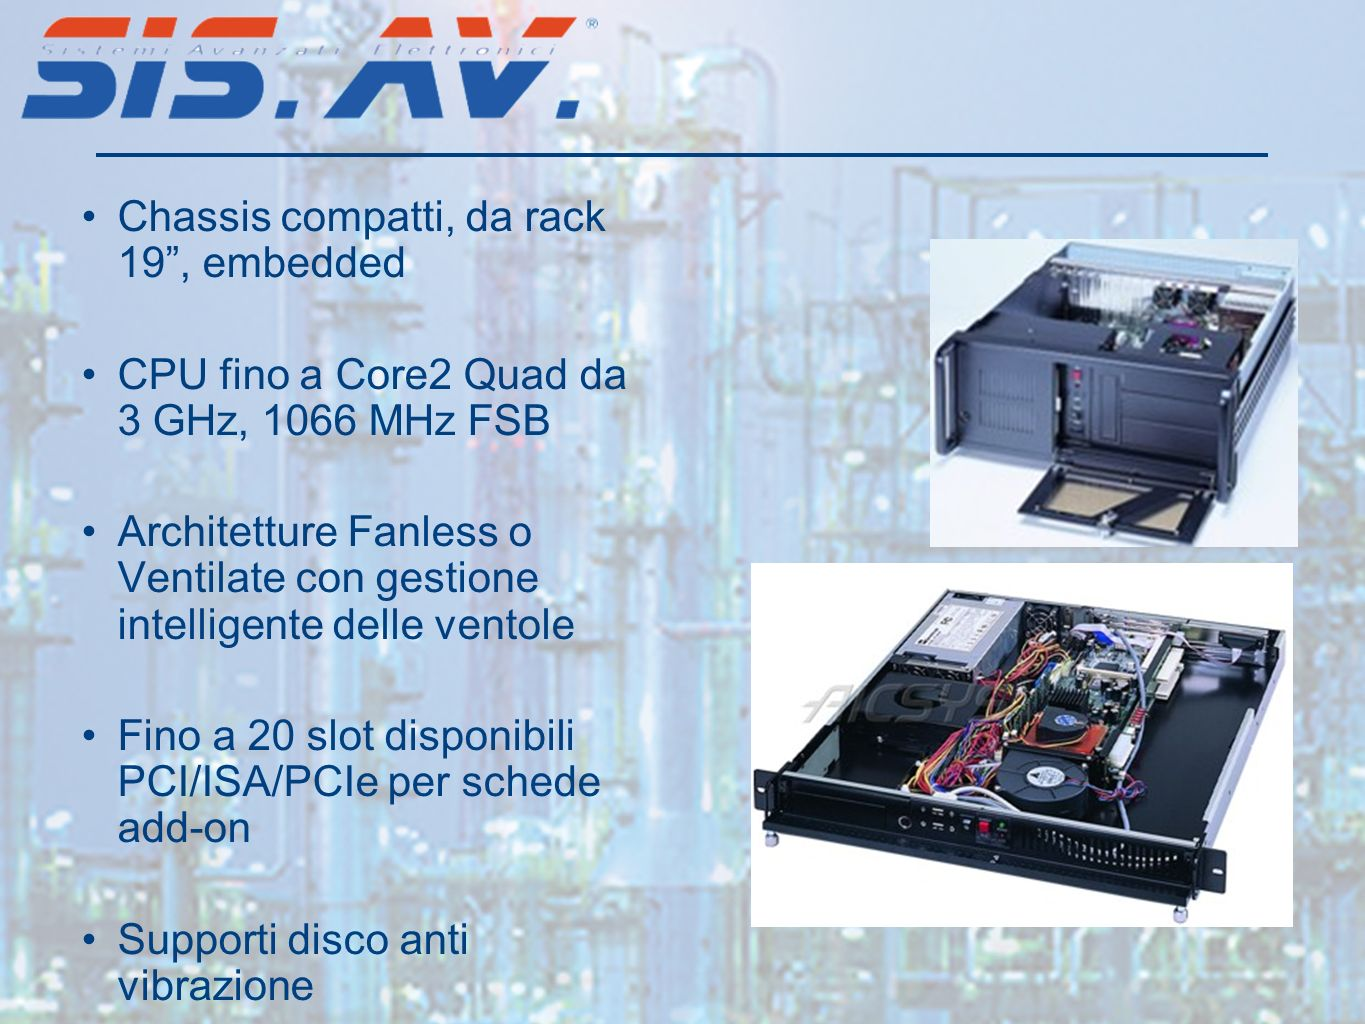 Chassis compatti, da rack 19 , embedded